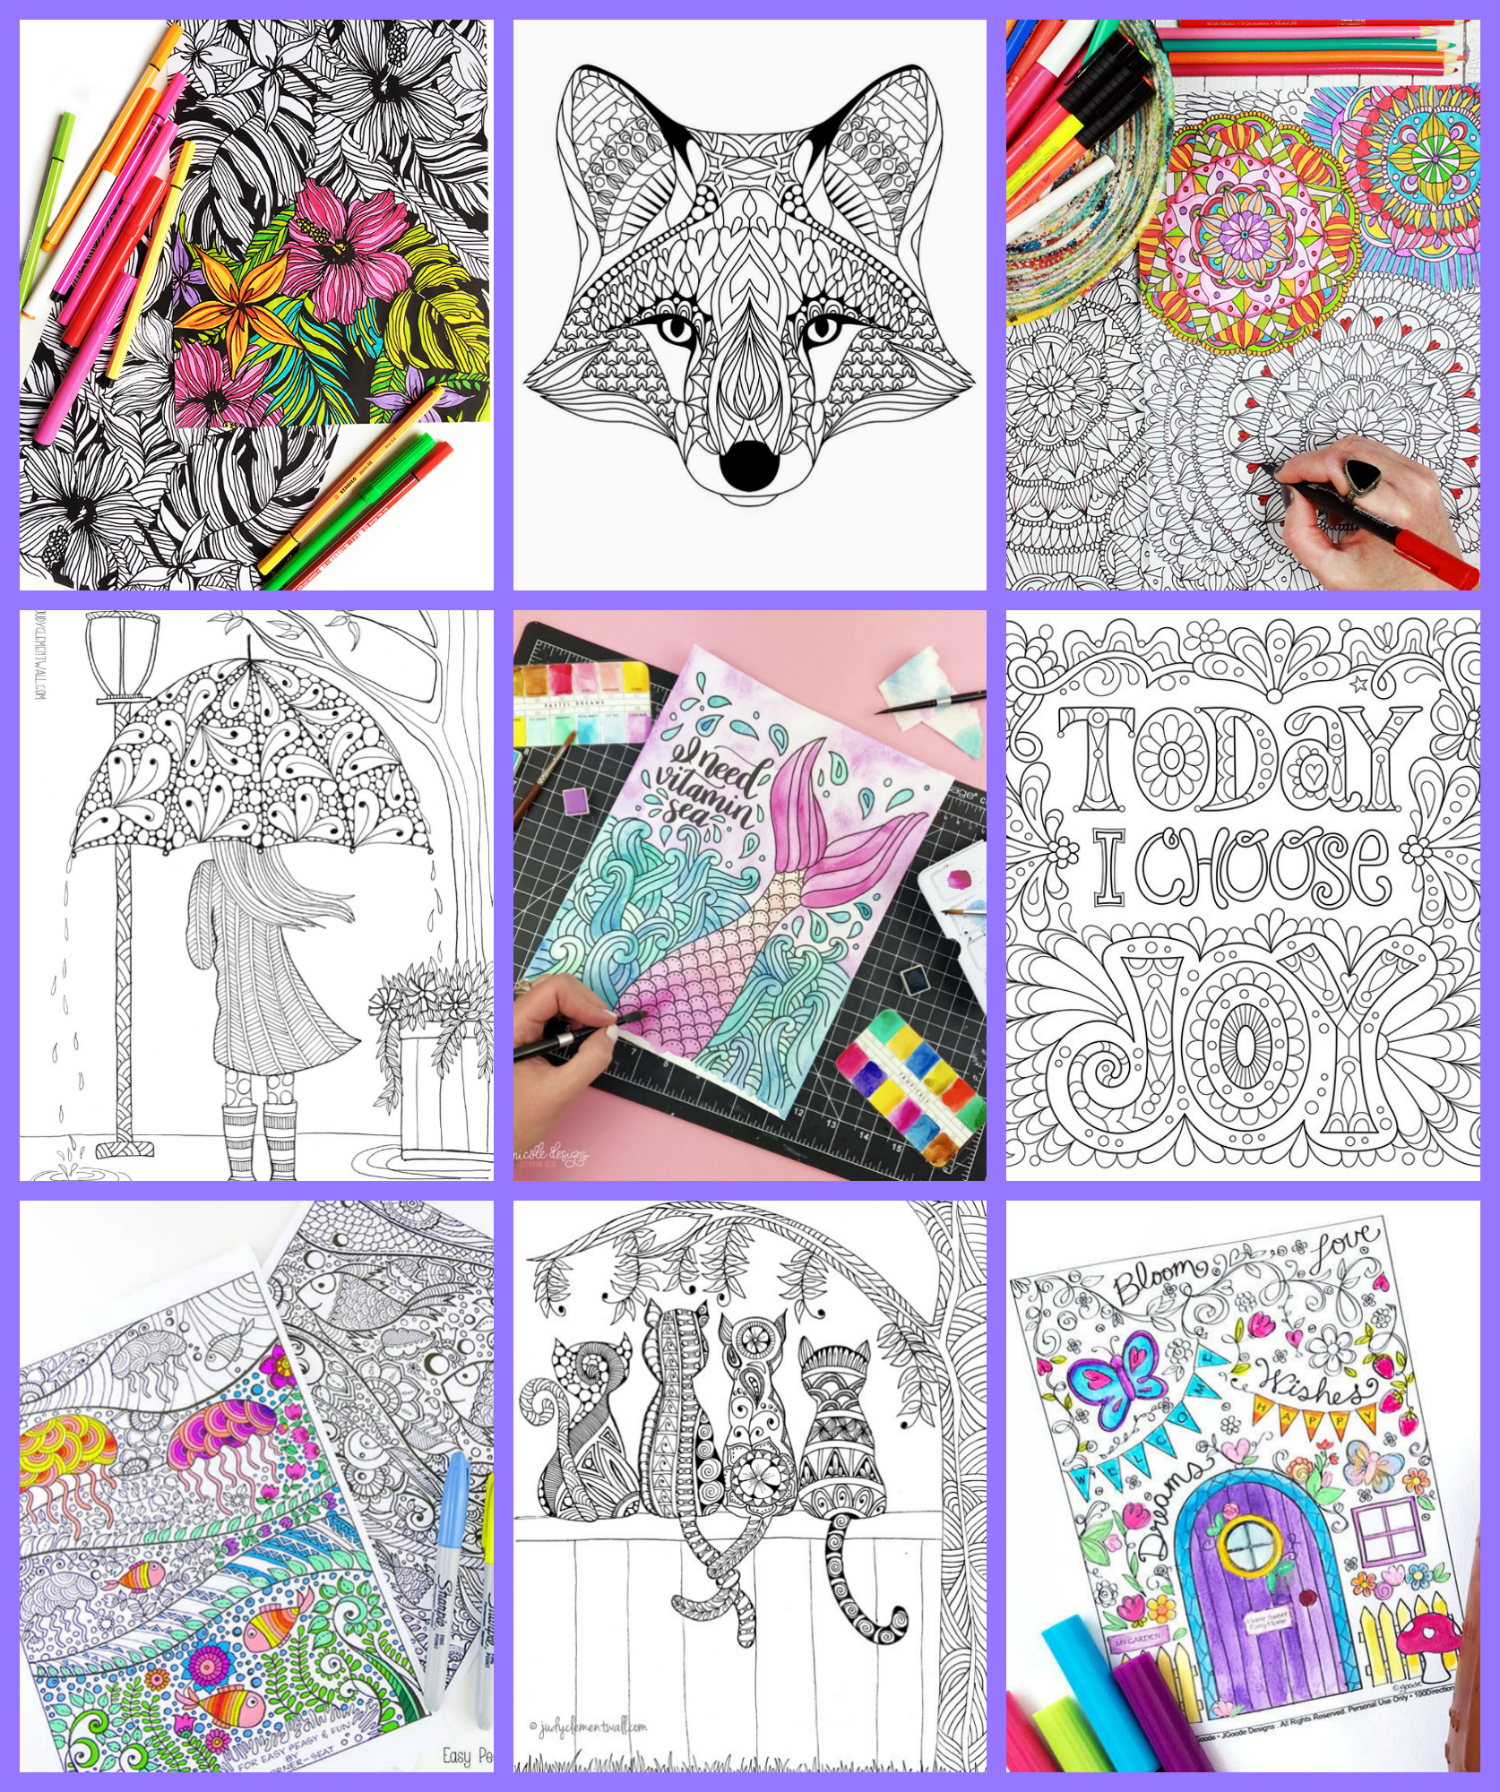 free adult coloring pages that are perfect for grown ups or older children who are